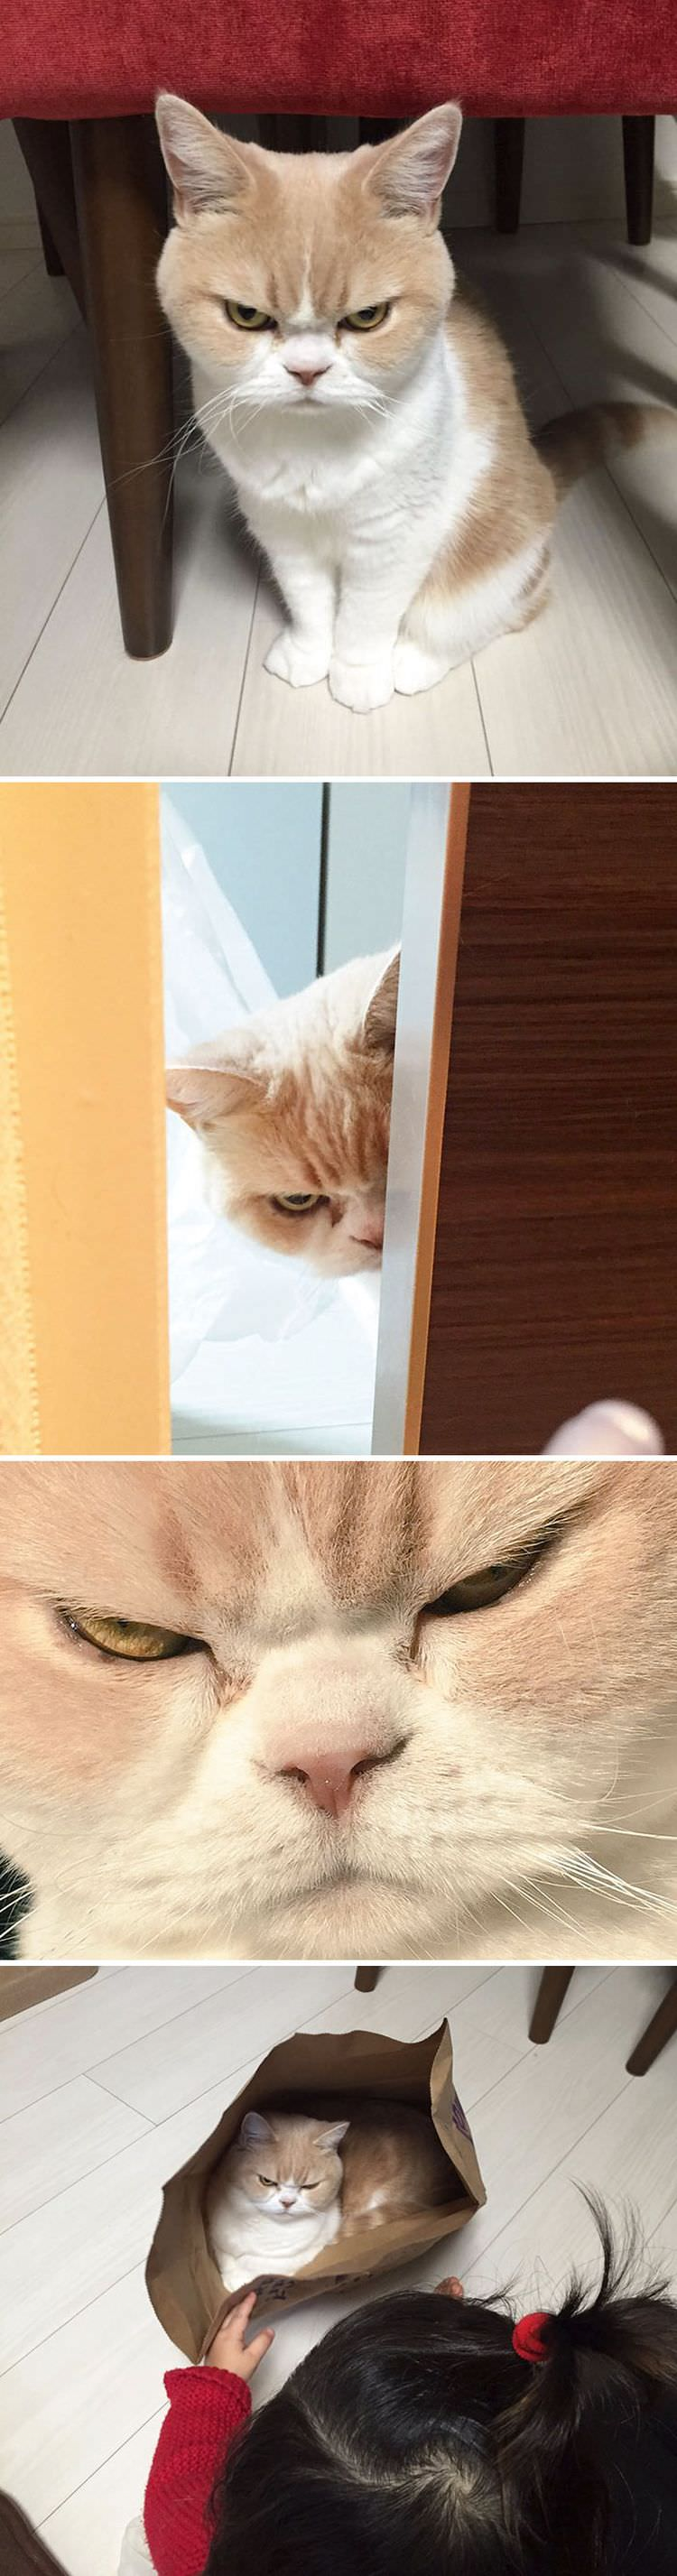 angry-cat-photography-3